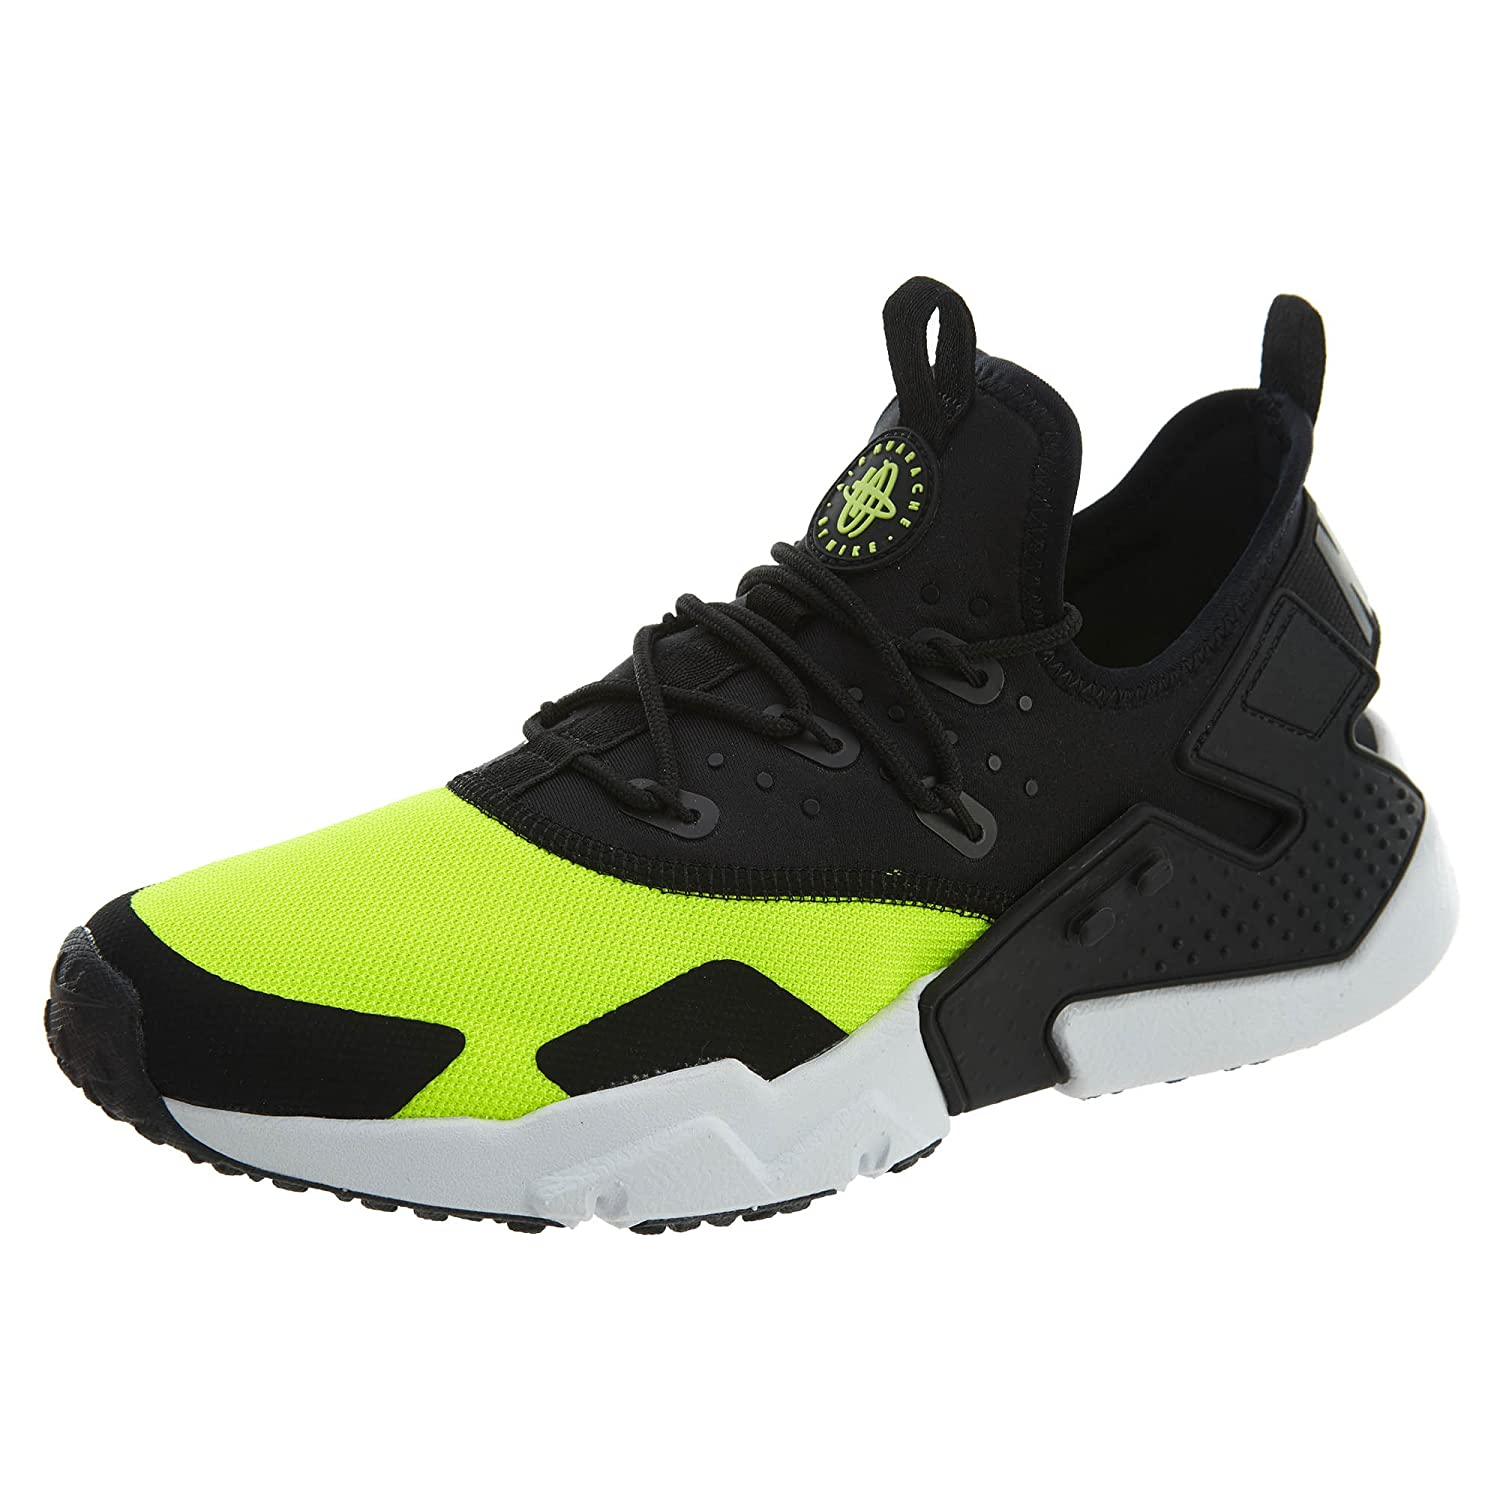 low priced 3f3b7 8efd5 Amazon.com   Nike Air Huarache Drift Mens Style  AH7334-700 Size  12  Volt Black-White   Athletic